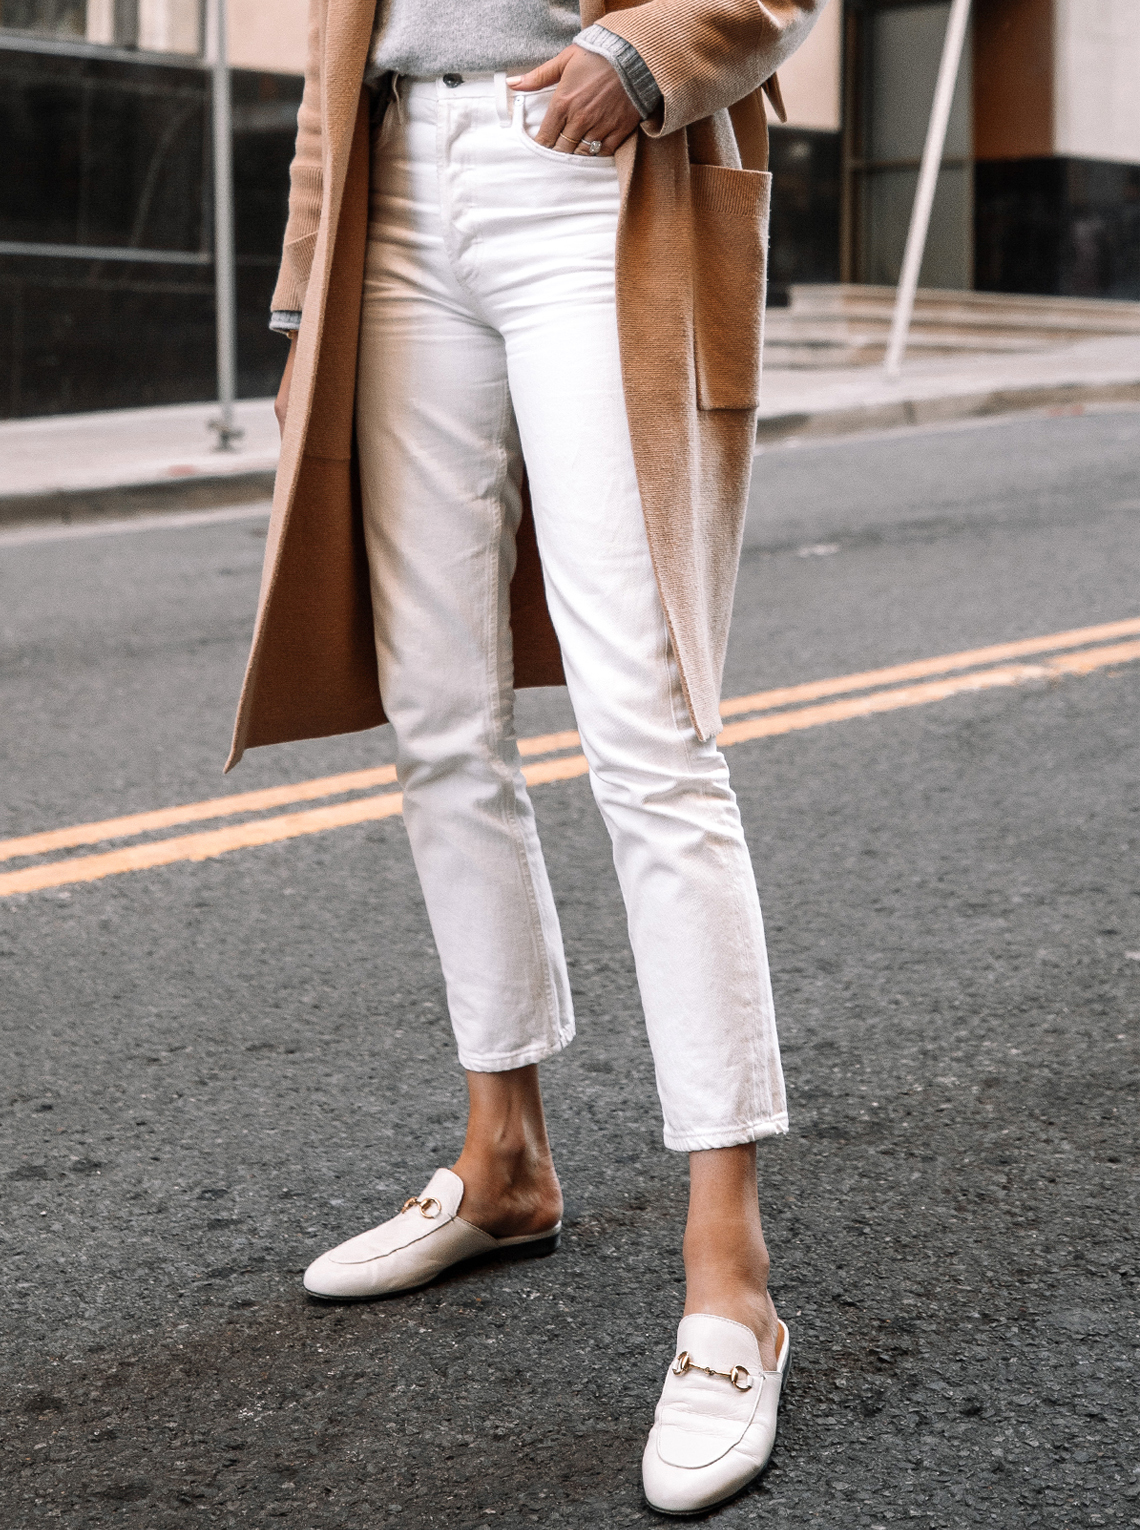 Fashoin Jackson Wearing Citizens of Humanity Charlotte High Rise Straight Jeans White Gucci Mules